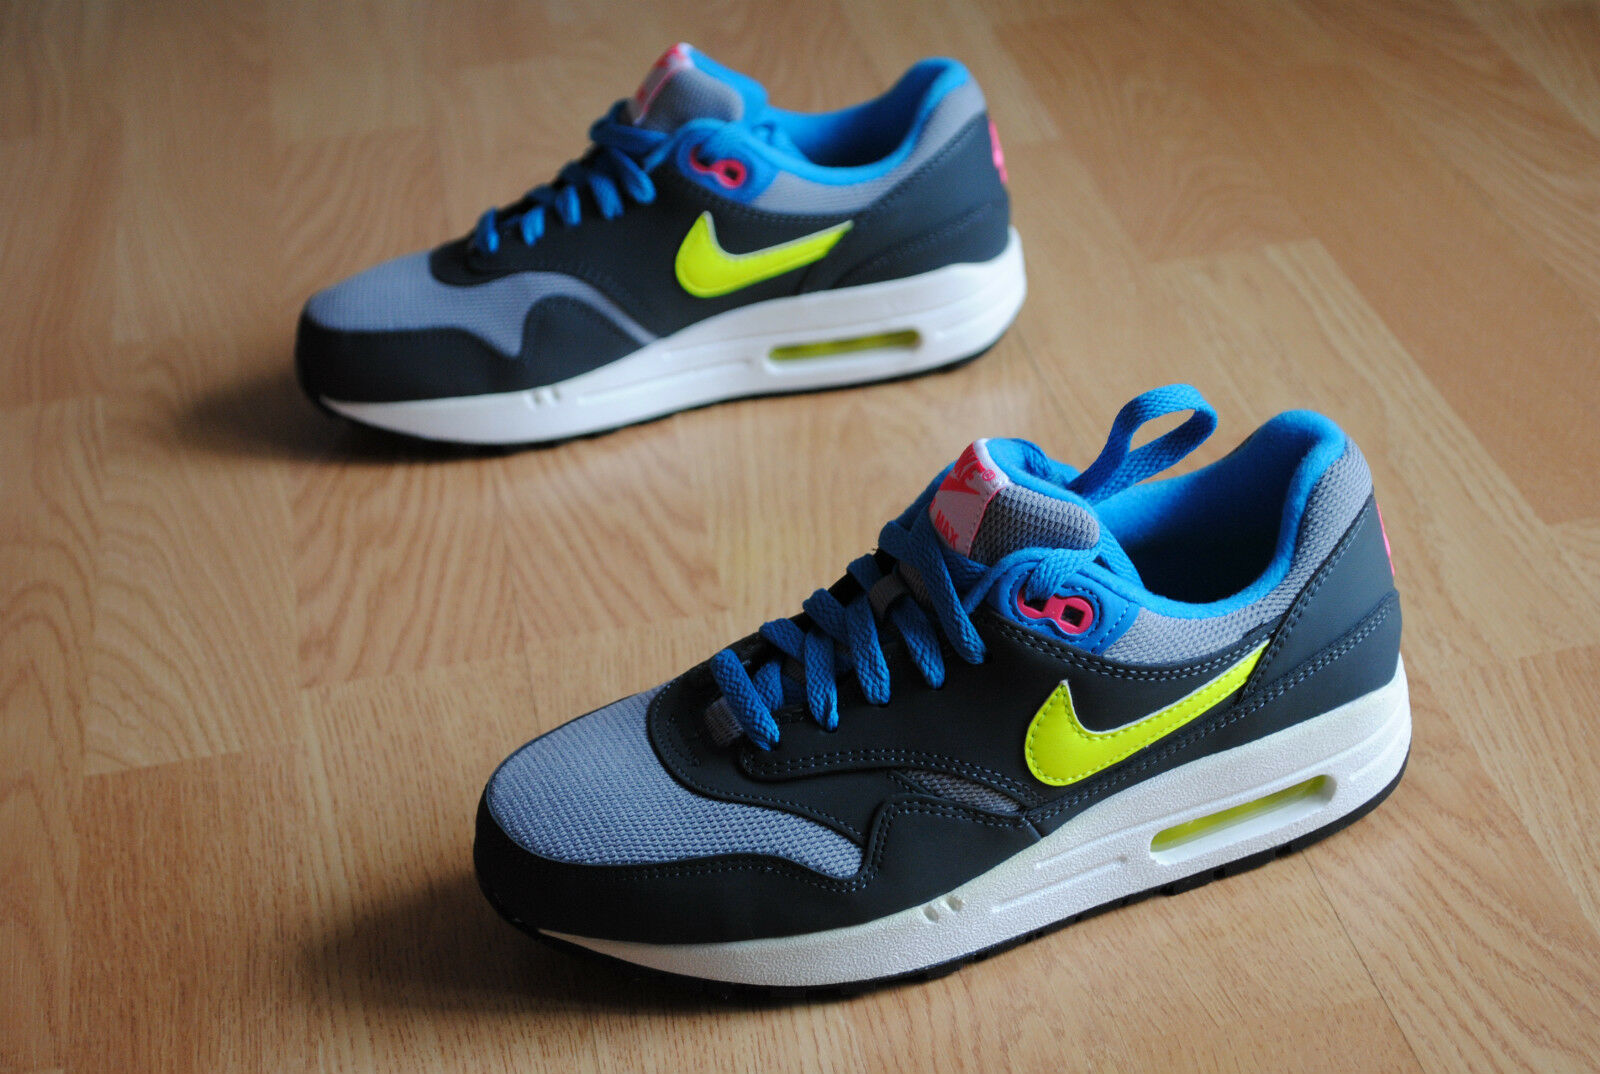 Zapatos promocionales para hombres y mujeres NIKE Air Max 1 gs gr  38 38,5  cOmManD claSsic fReE skyline 90 bW light